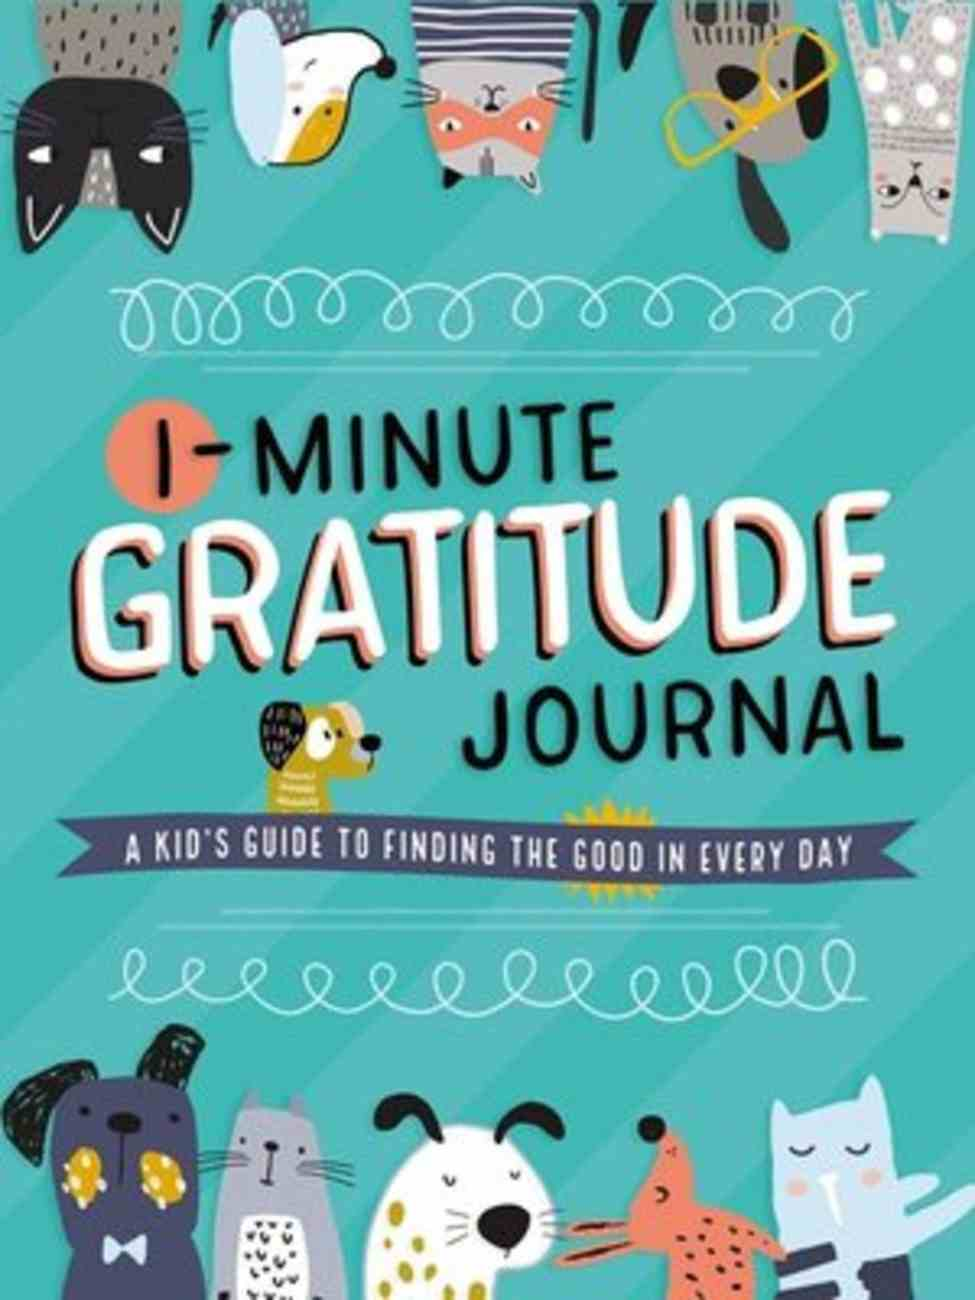 1-Minute Gratitude Journal: A Kid's Guide to Finding the Good in Every Day Paperback